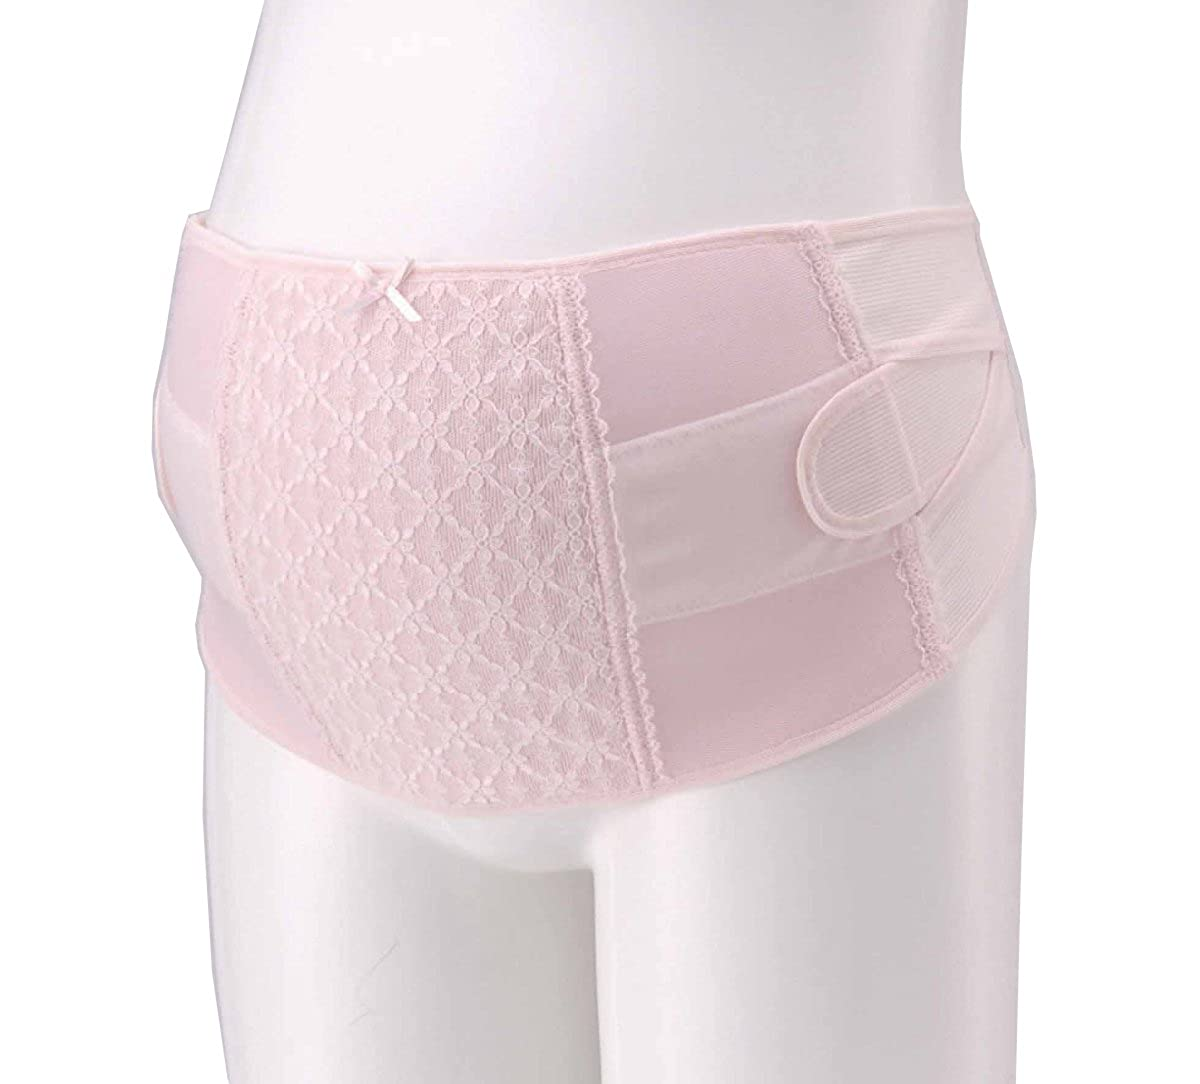 FUN fun Women's Inujirushi Honpo Maternity Pregnancy Belt Support Belt HB-8055_oya_US